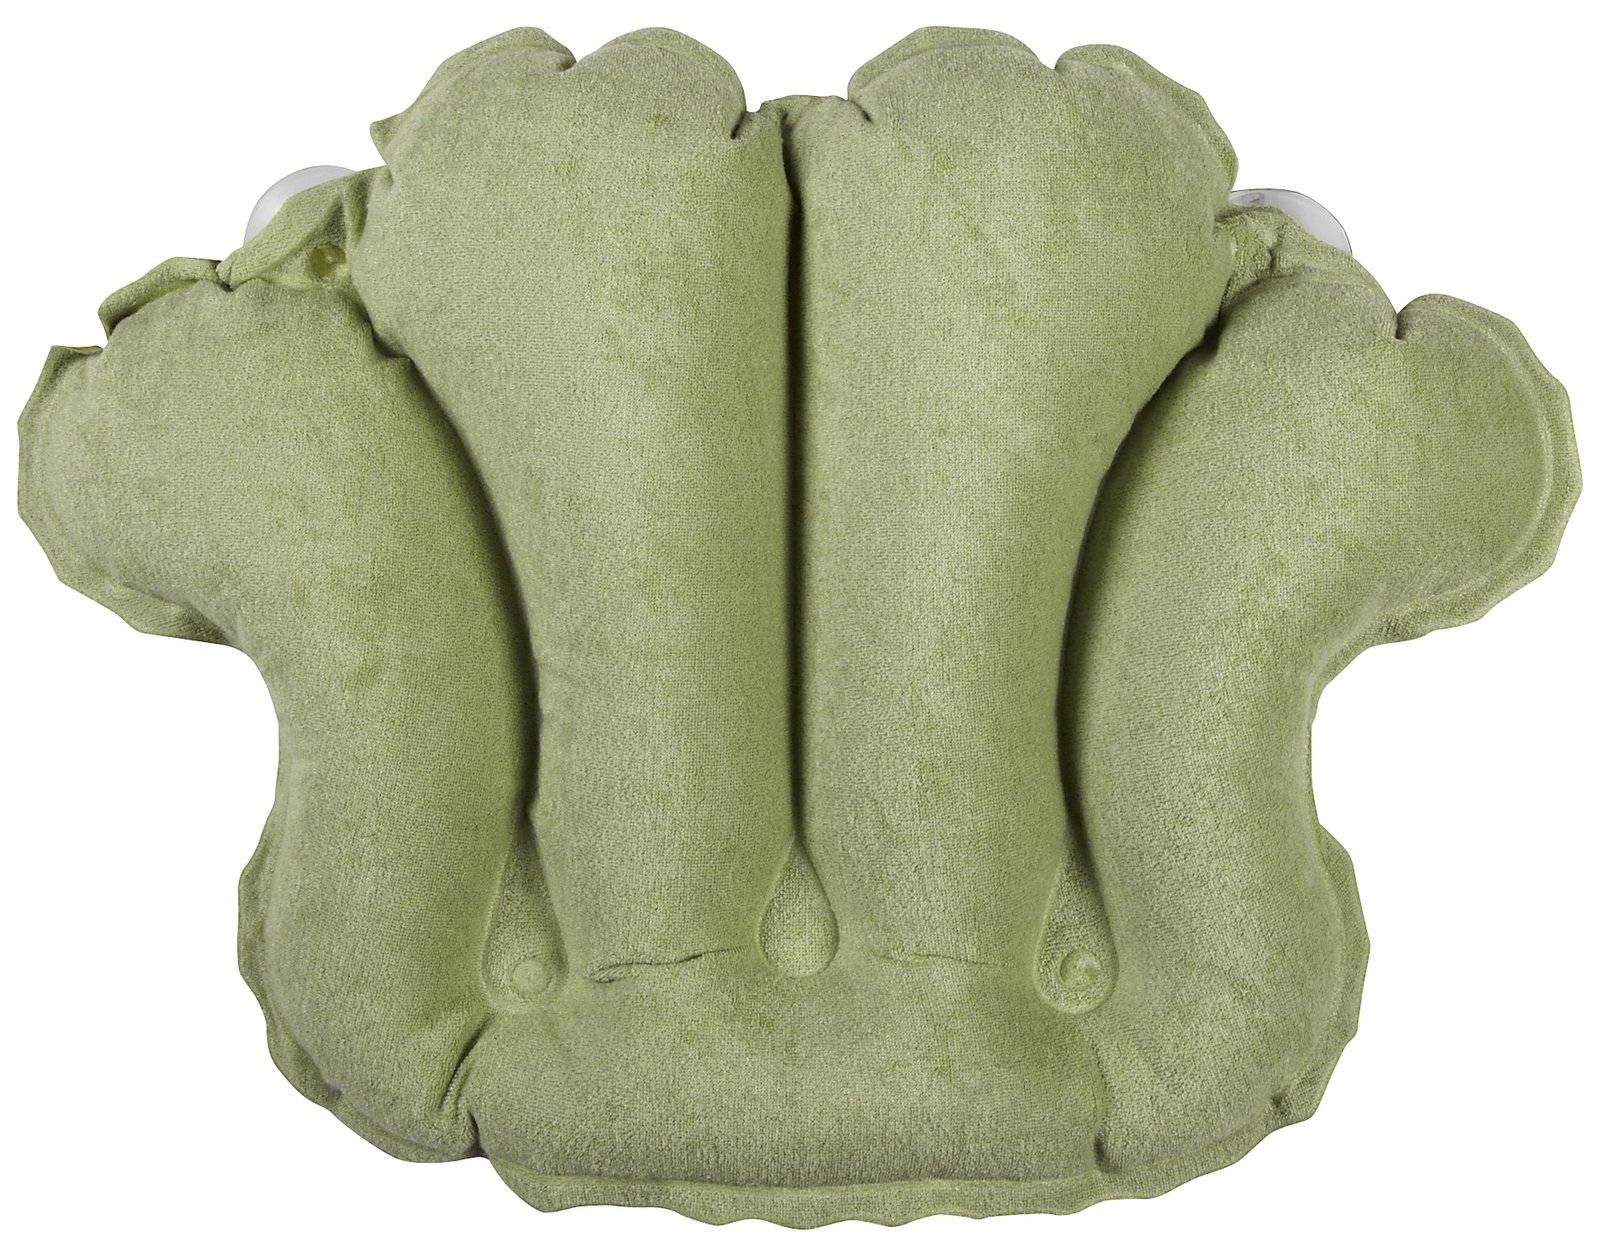 Terry-Bath-Pillow-Inflatable-bath-pillow-with-suction-